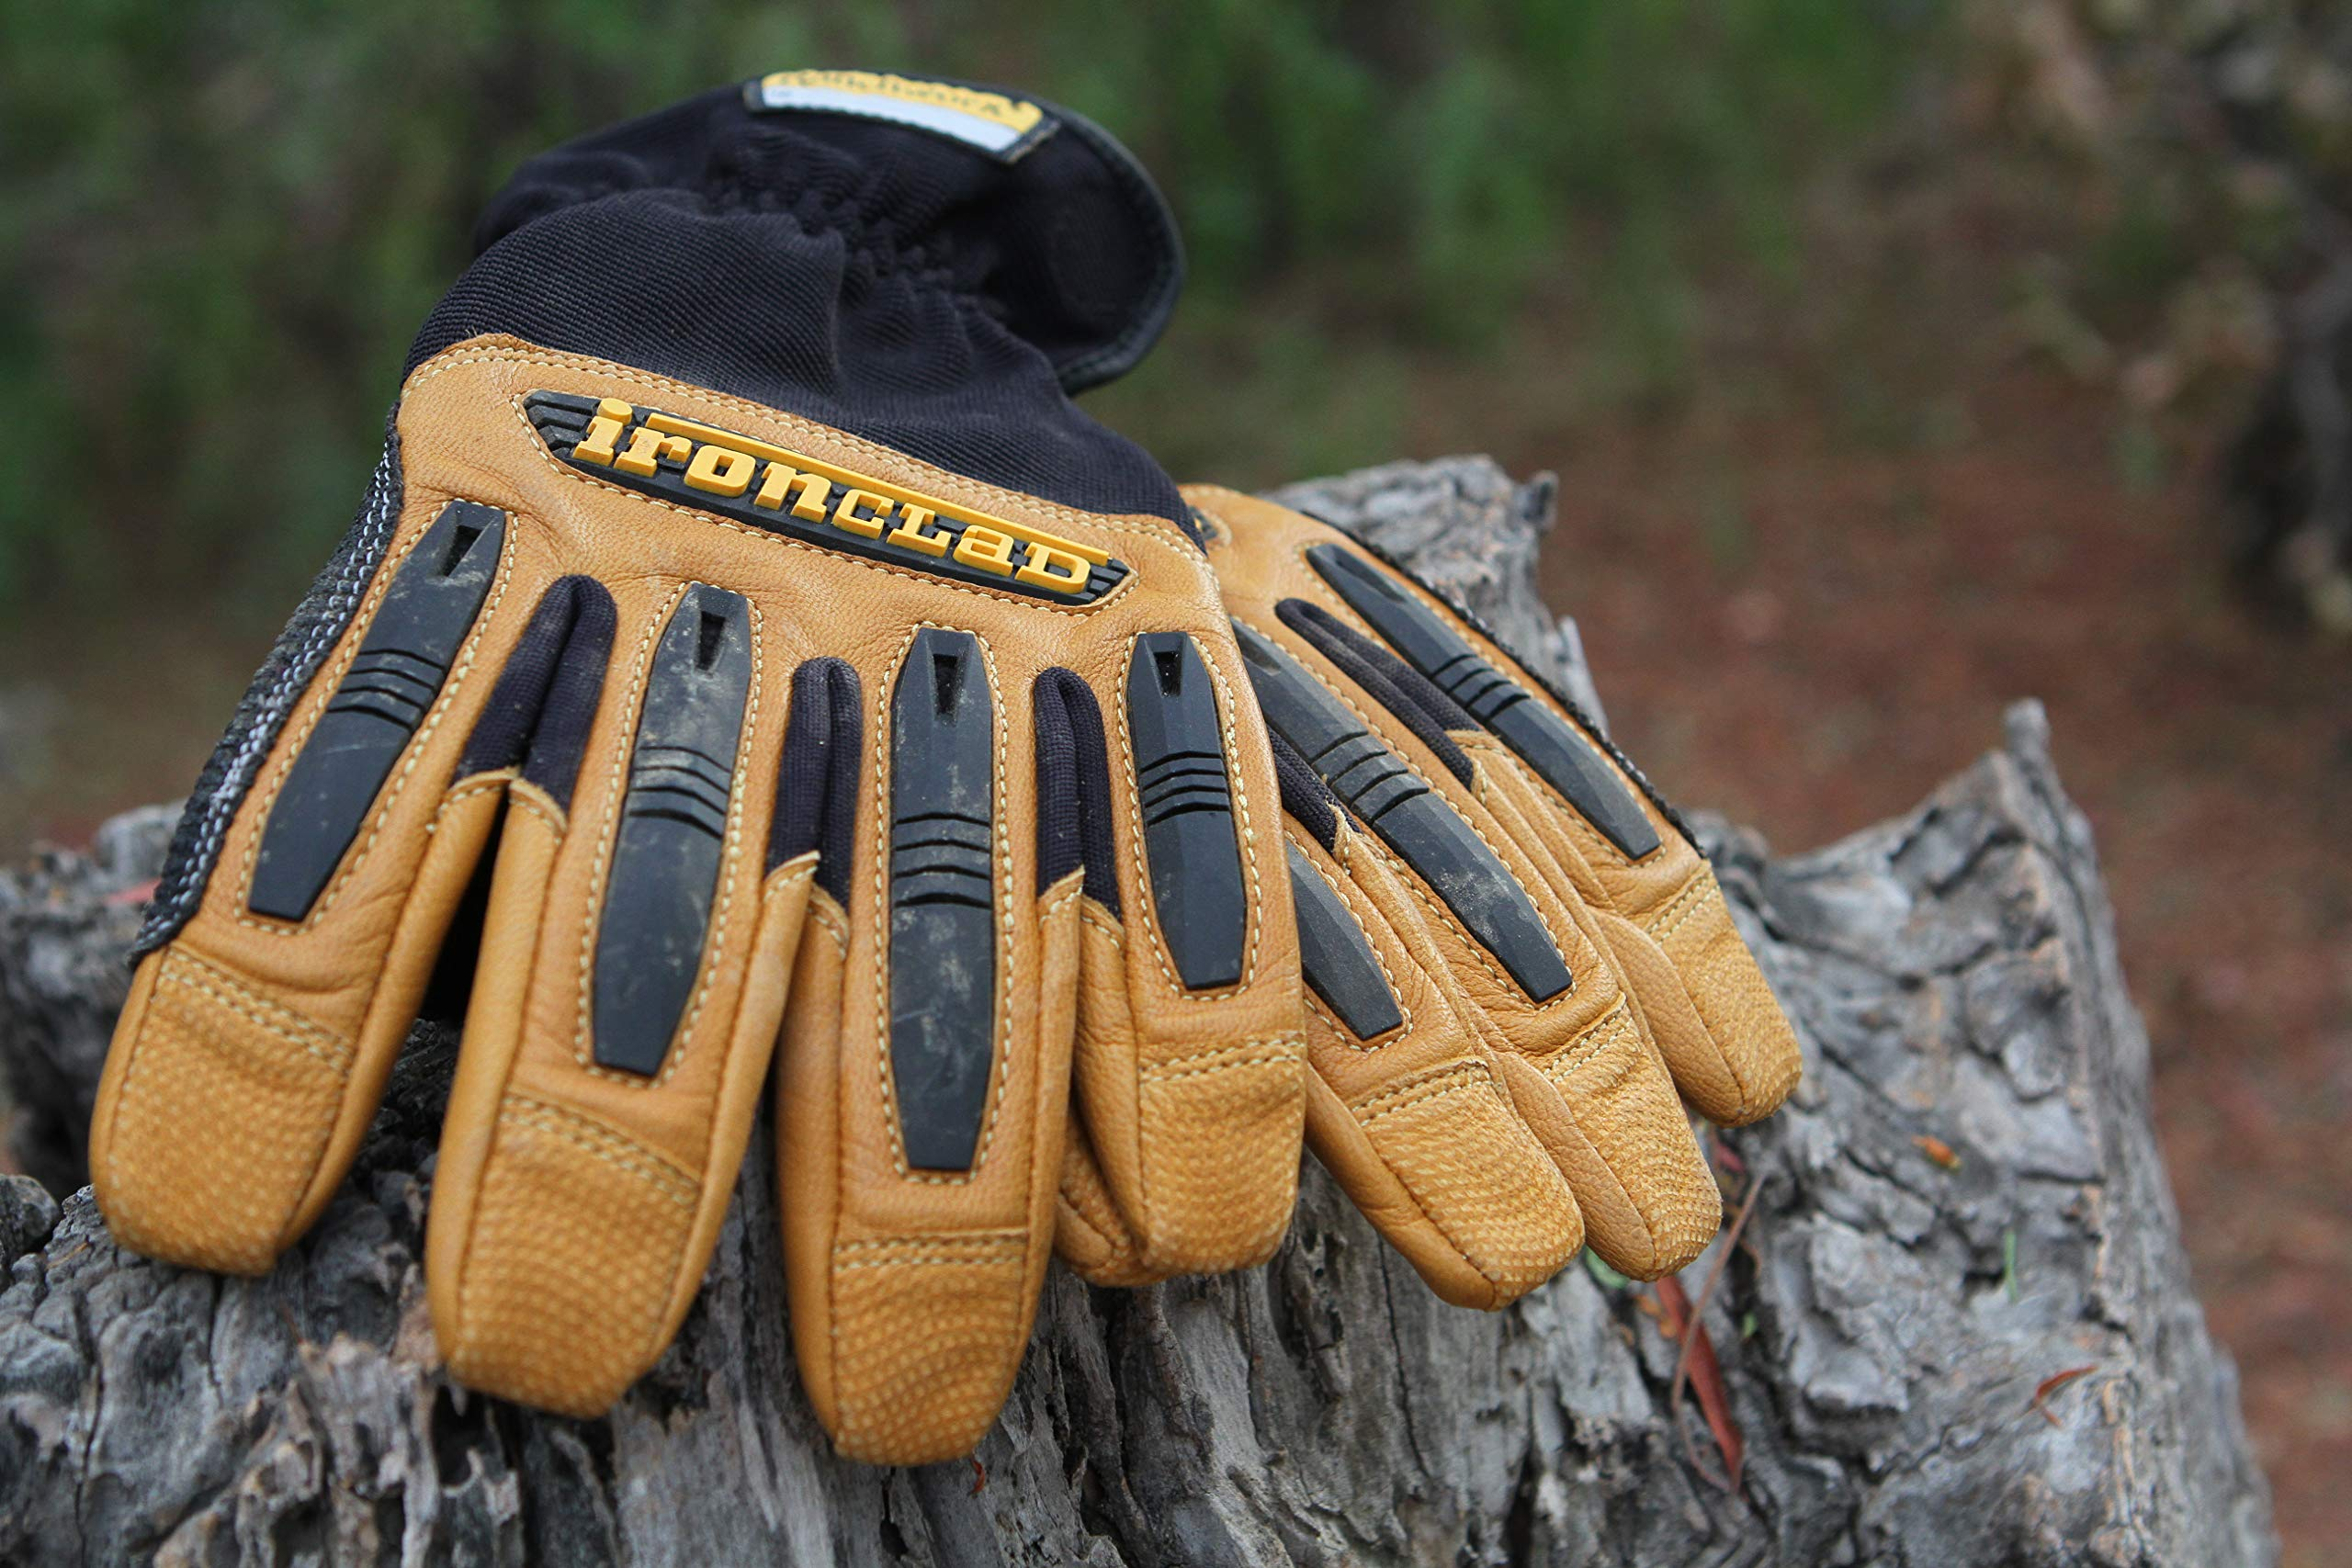 Ironclad Ranchworx Work Gloves RWG2, Premier Leather Work Glove, Performance Fit, Durable, Machine Washable, Sized S, M, L, XL, XXL, XXXL (1 Pair) by Ironclad (Image #3)